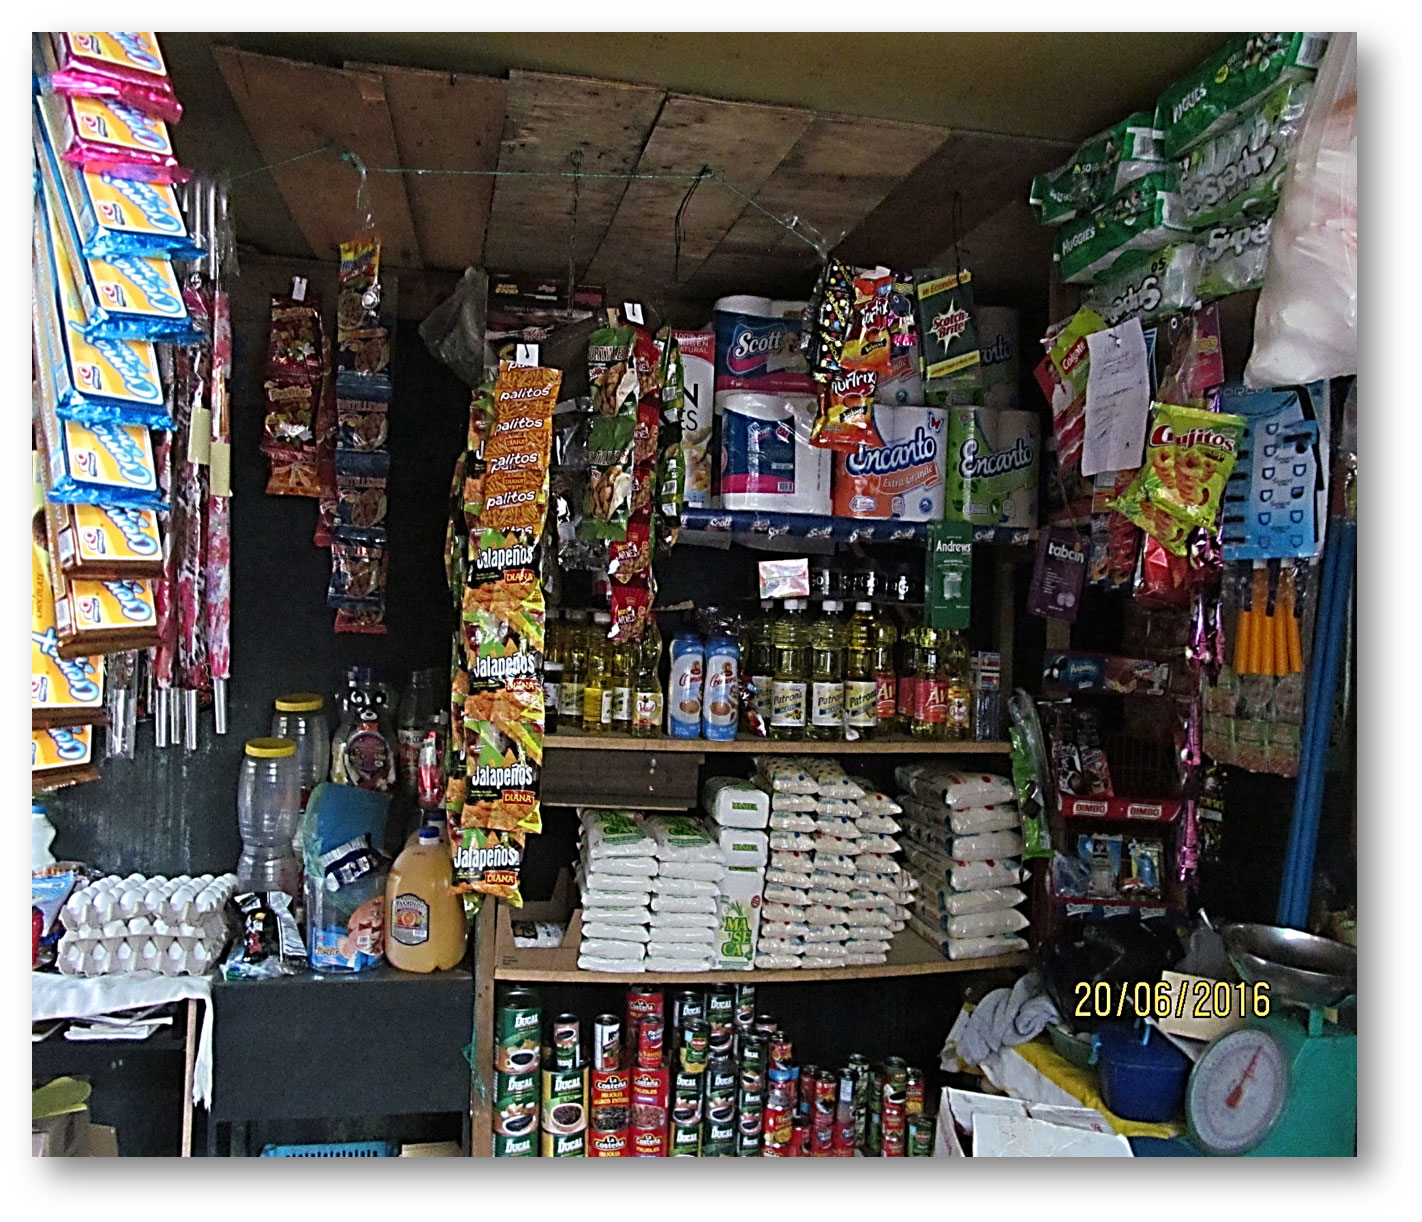 Marcia's store full of new goods from a microloan.